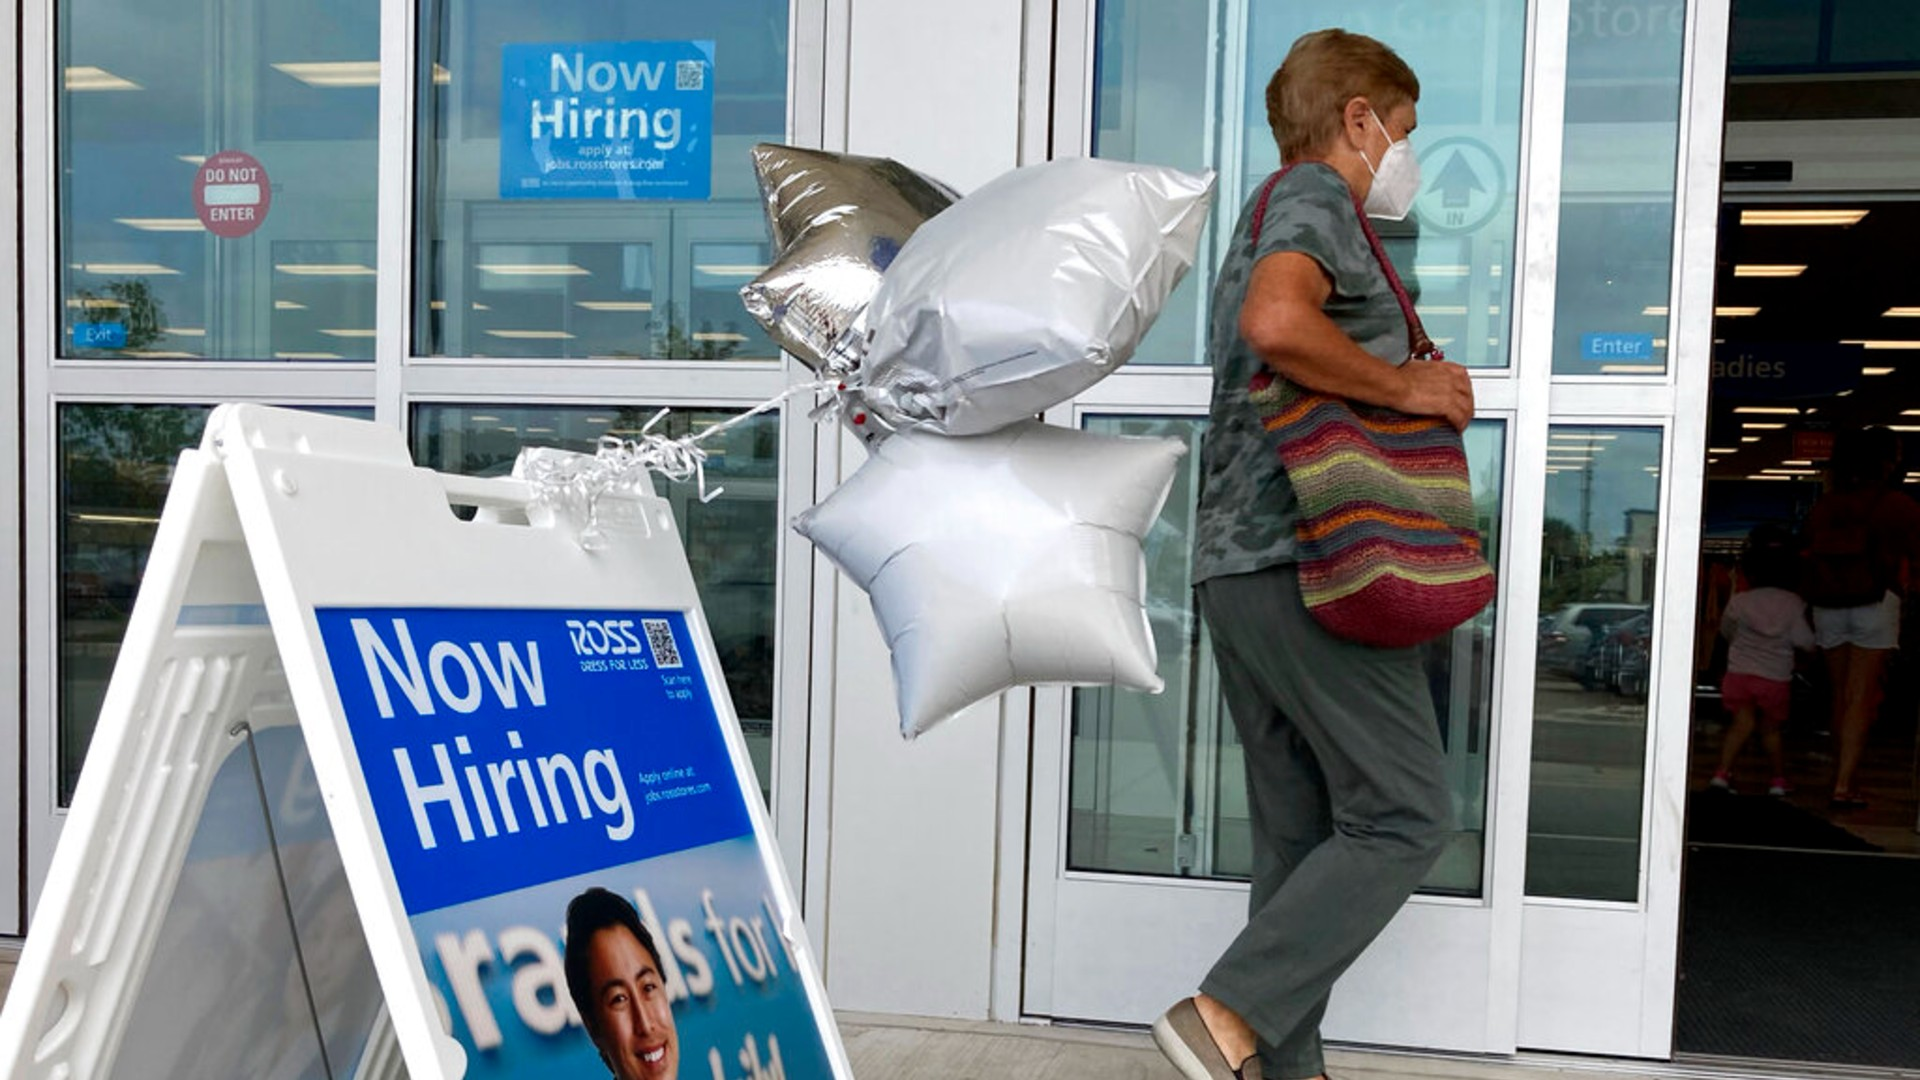 A shopper passes a hiring sign while entering a retail store in Morton Grove, Ill., Wednesday, July 21, 2021. (AP Photo/Nam Y. Huh)